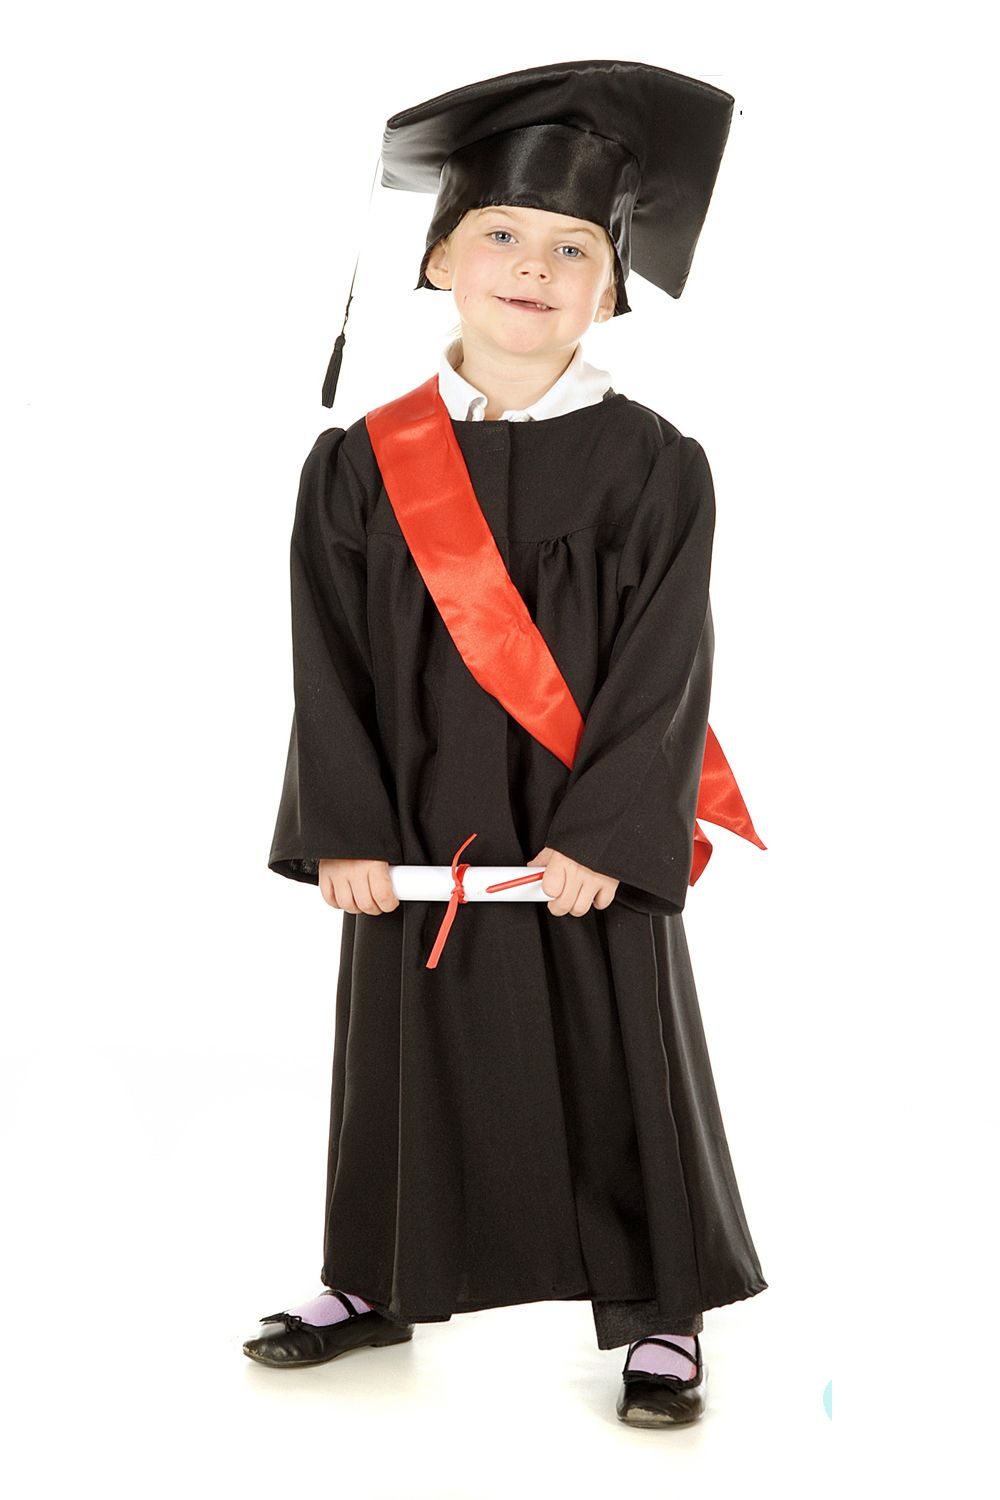 Children s Kids Boys Girls Graduation Gown & Cap Fancy Dress Up ...